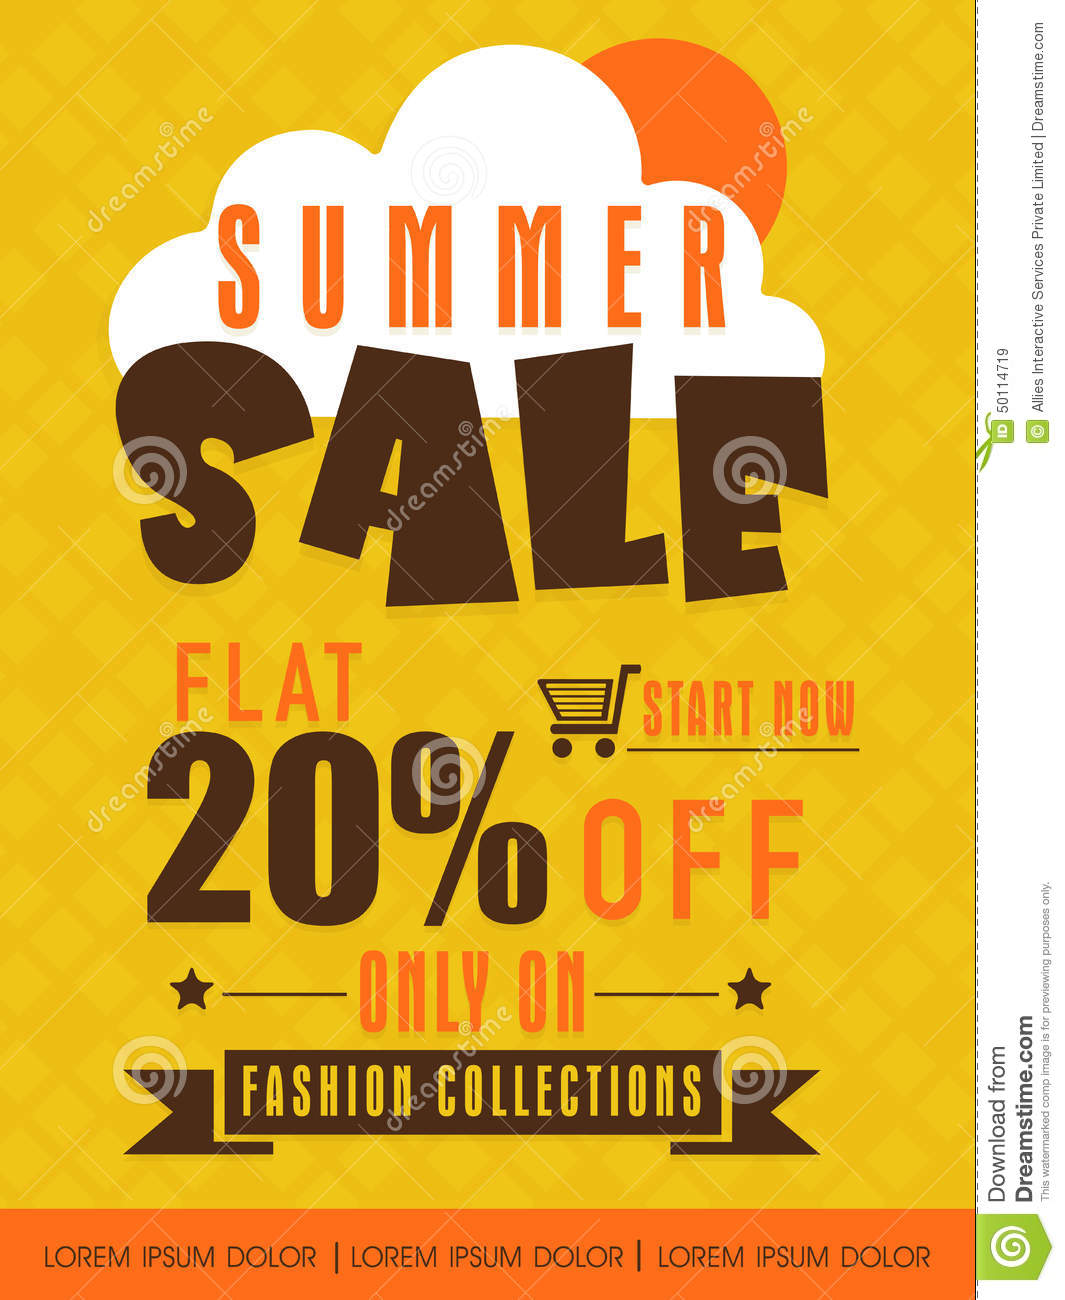 Summer sale flyer banner or poster stock photo image for Cheap prints and posters